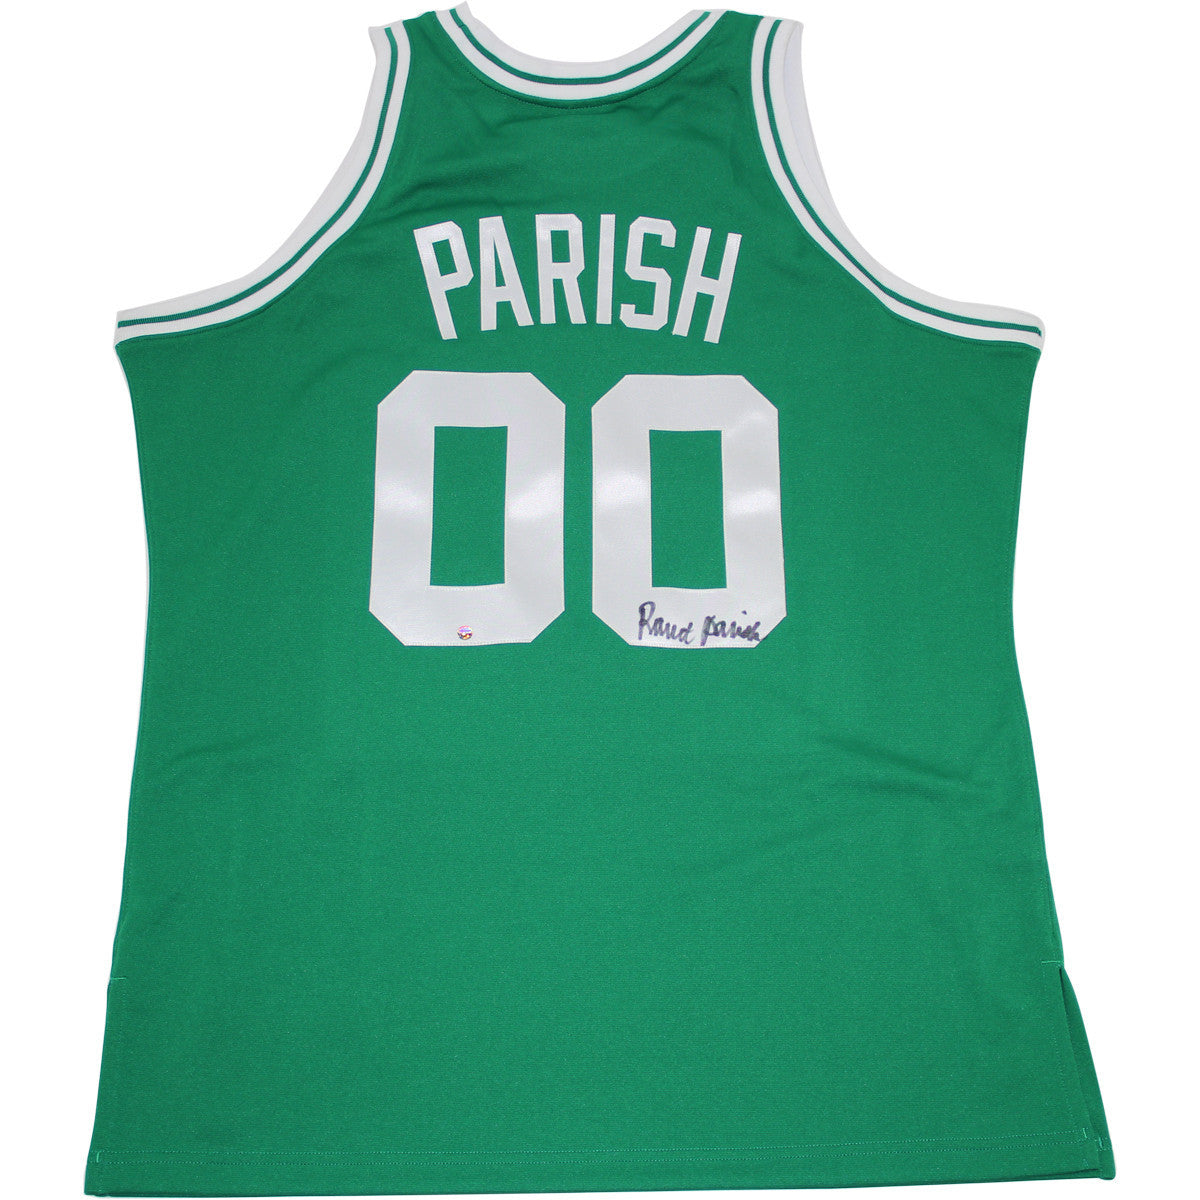 d3279713e81 Robert Parish Signed 1987-88 Boston Celtics Authentic Jersey ...